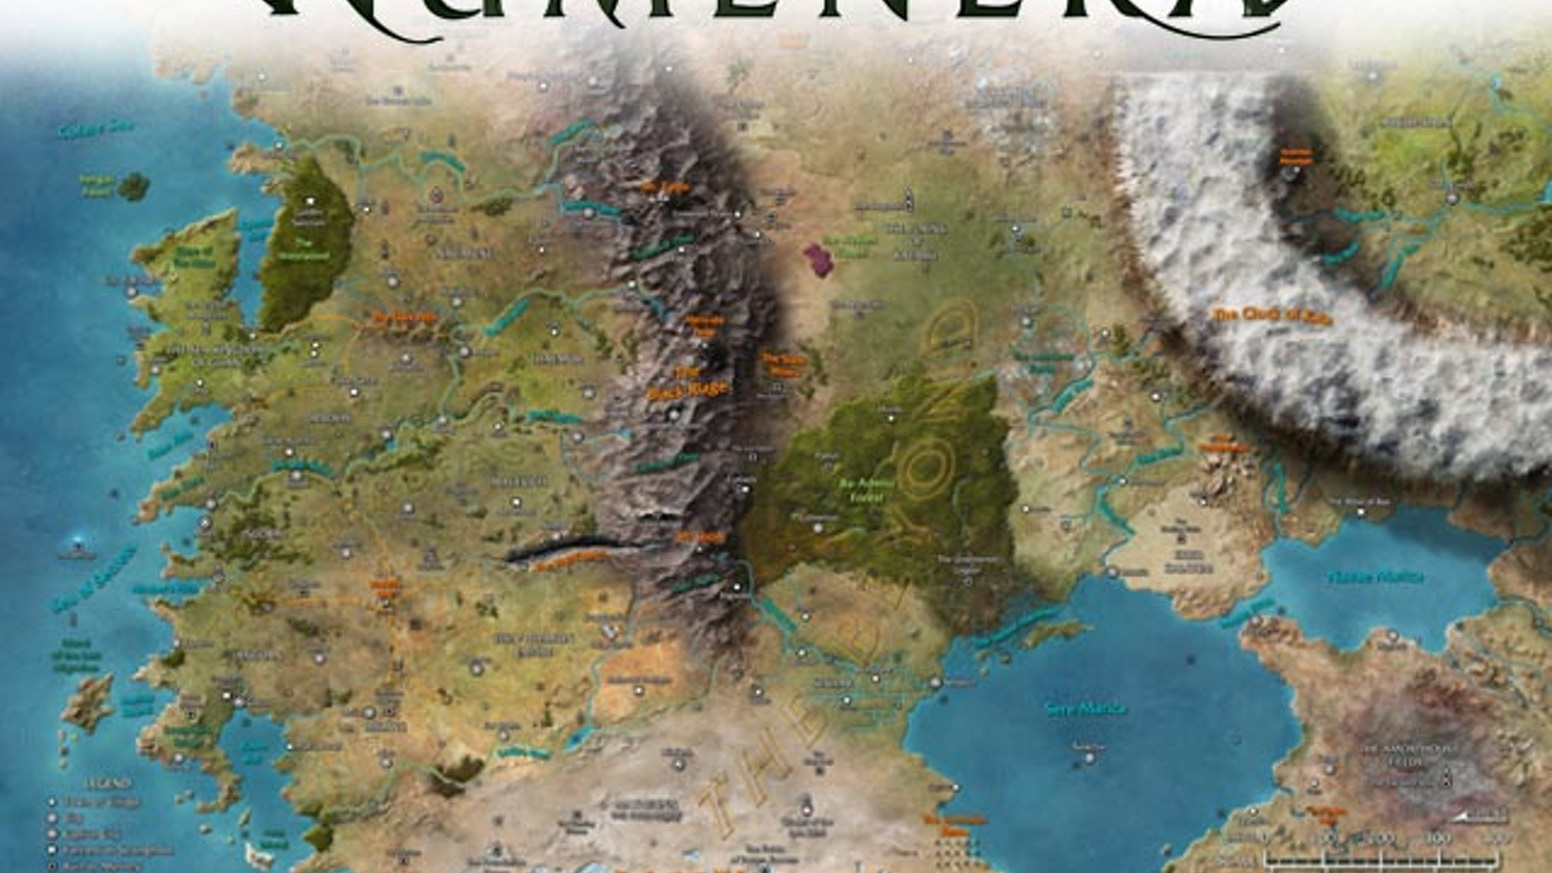 Numenera: Poster Maps of the Ninth World by Christopher West